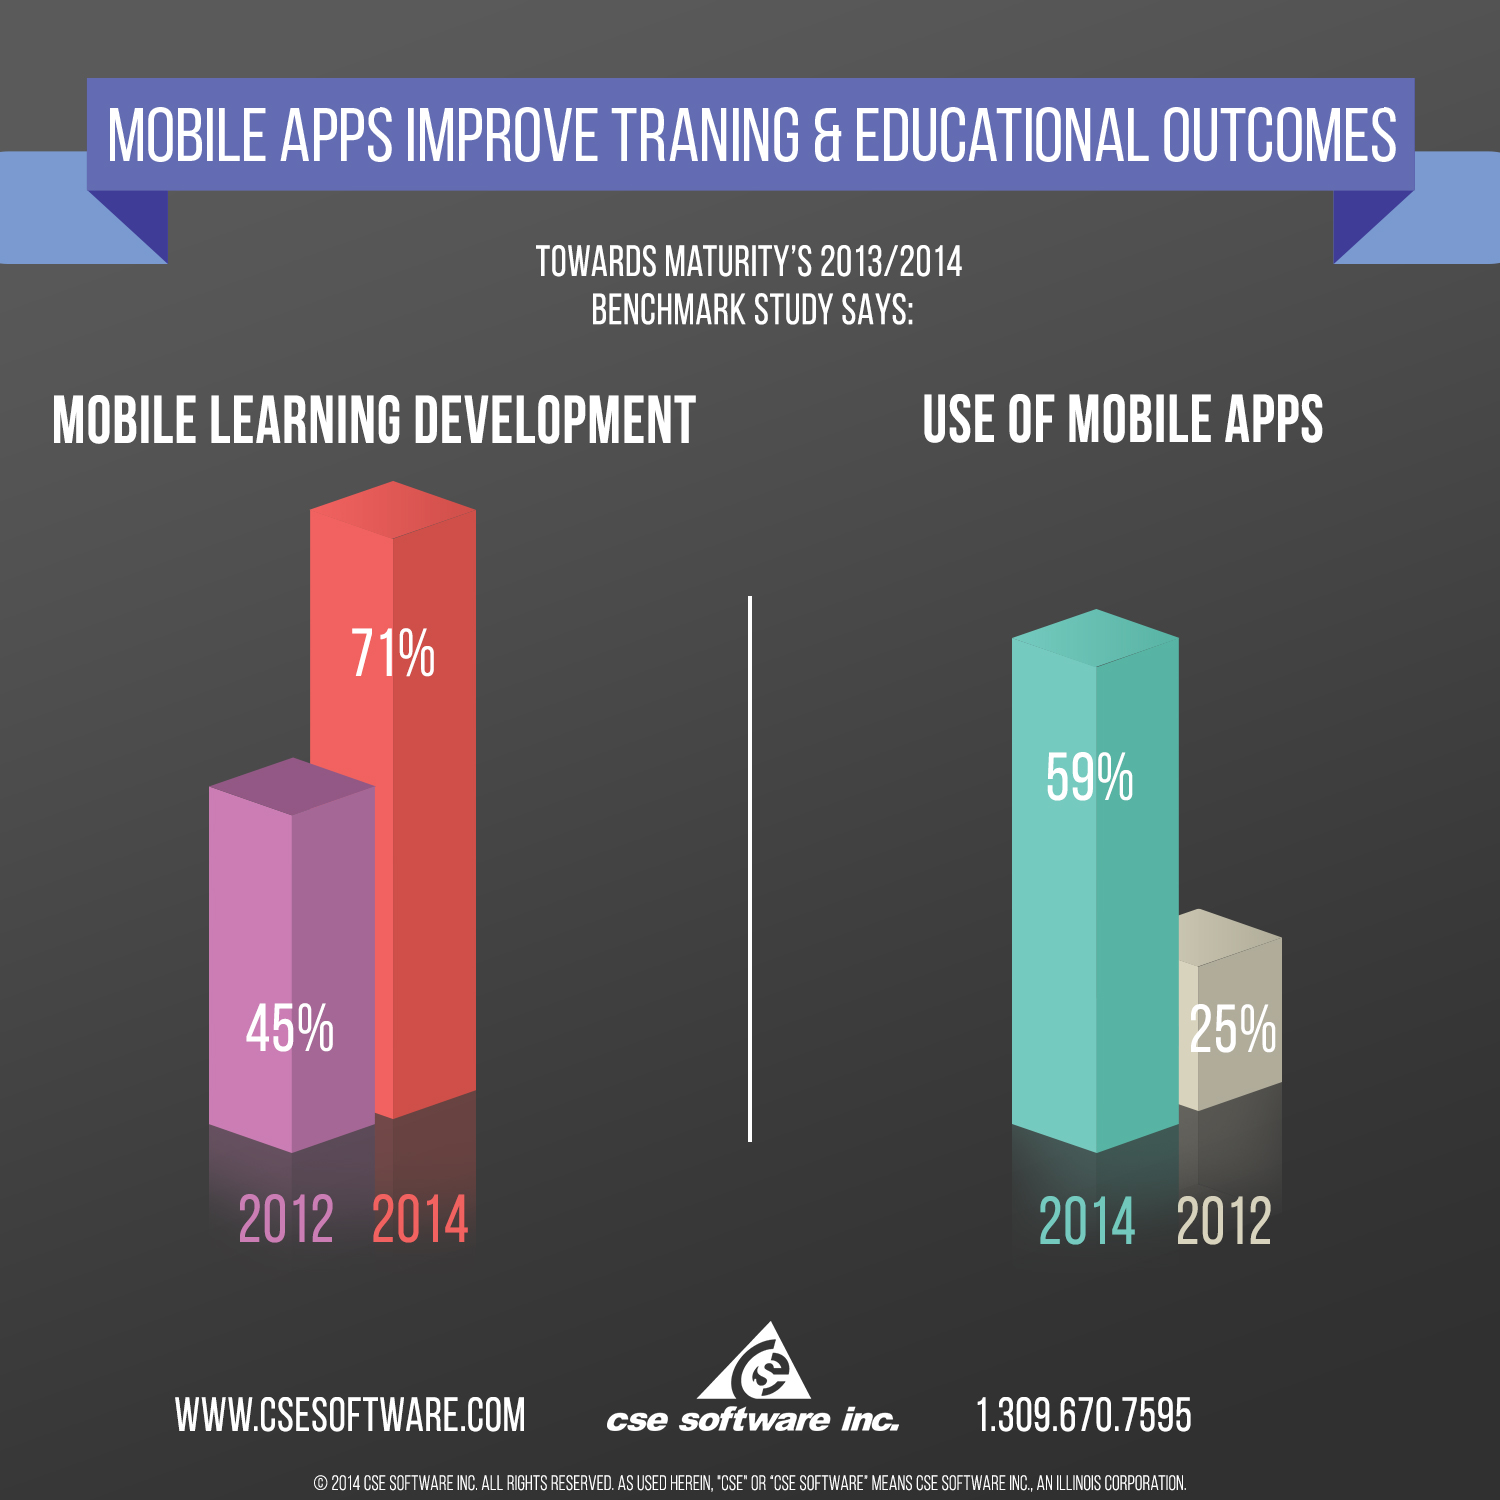 Mobile Apps Improve Training and Educational Outcomes